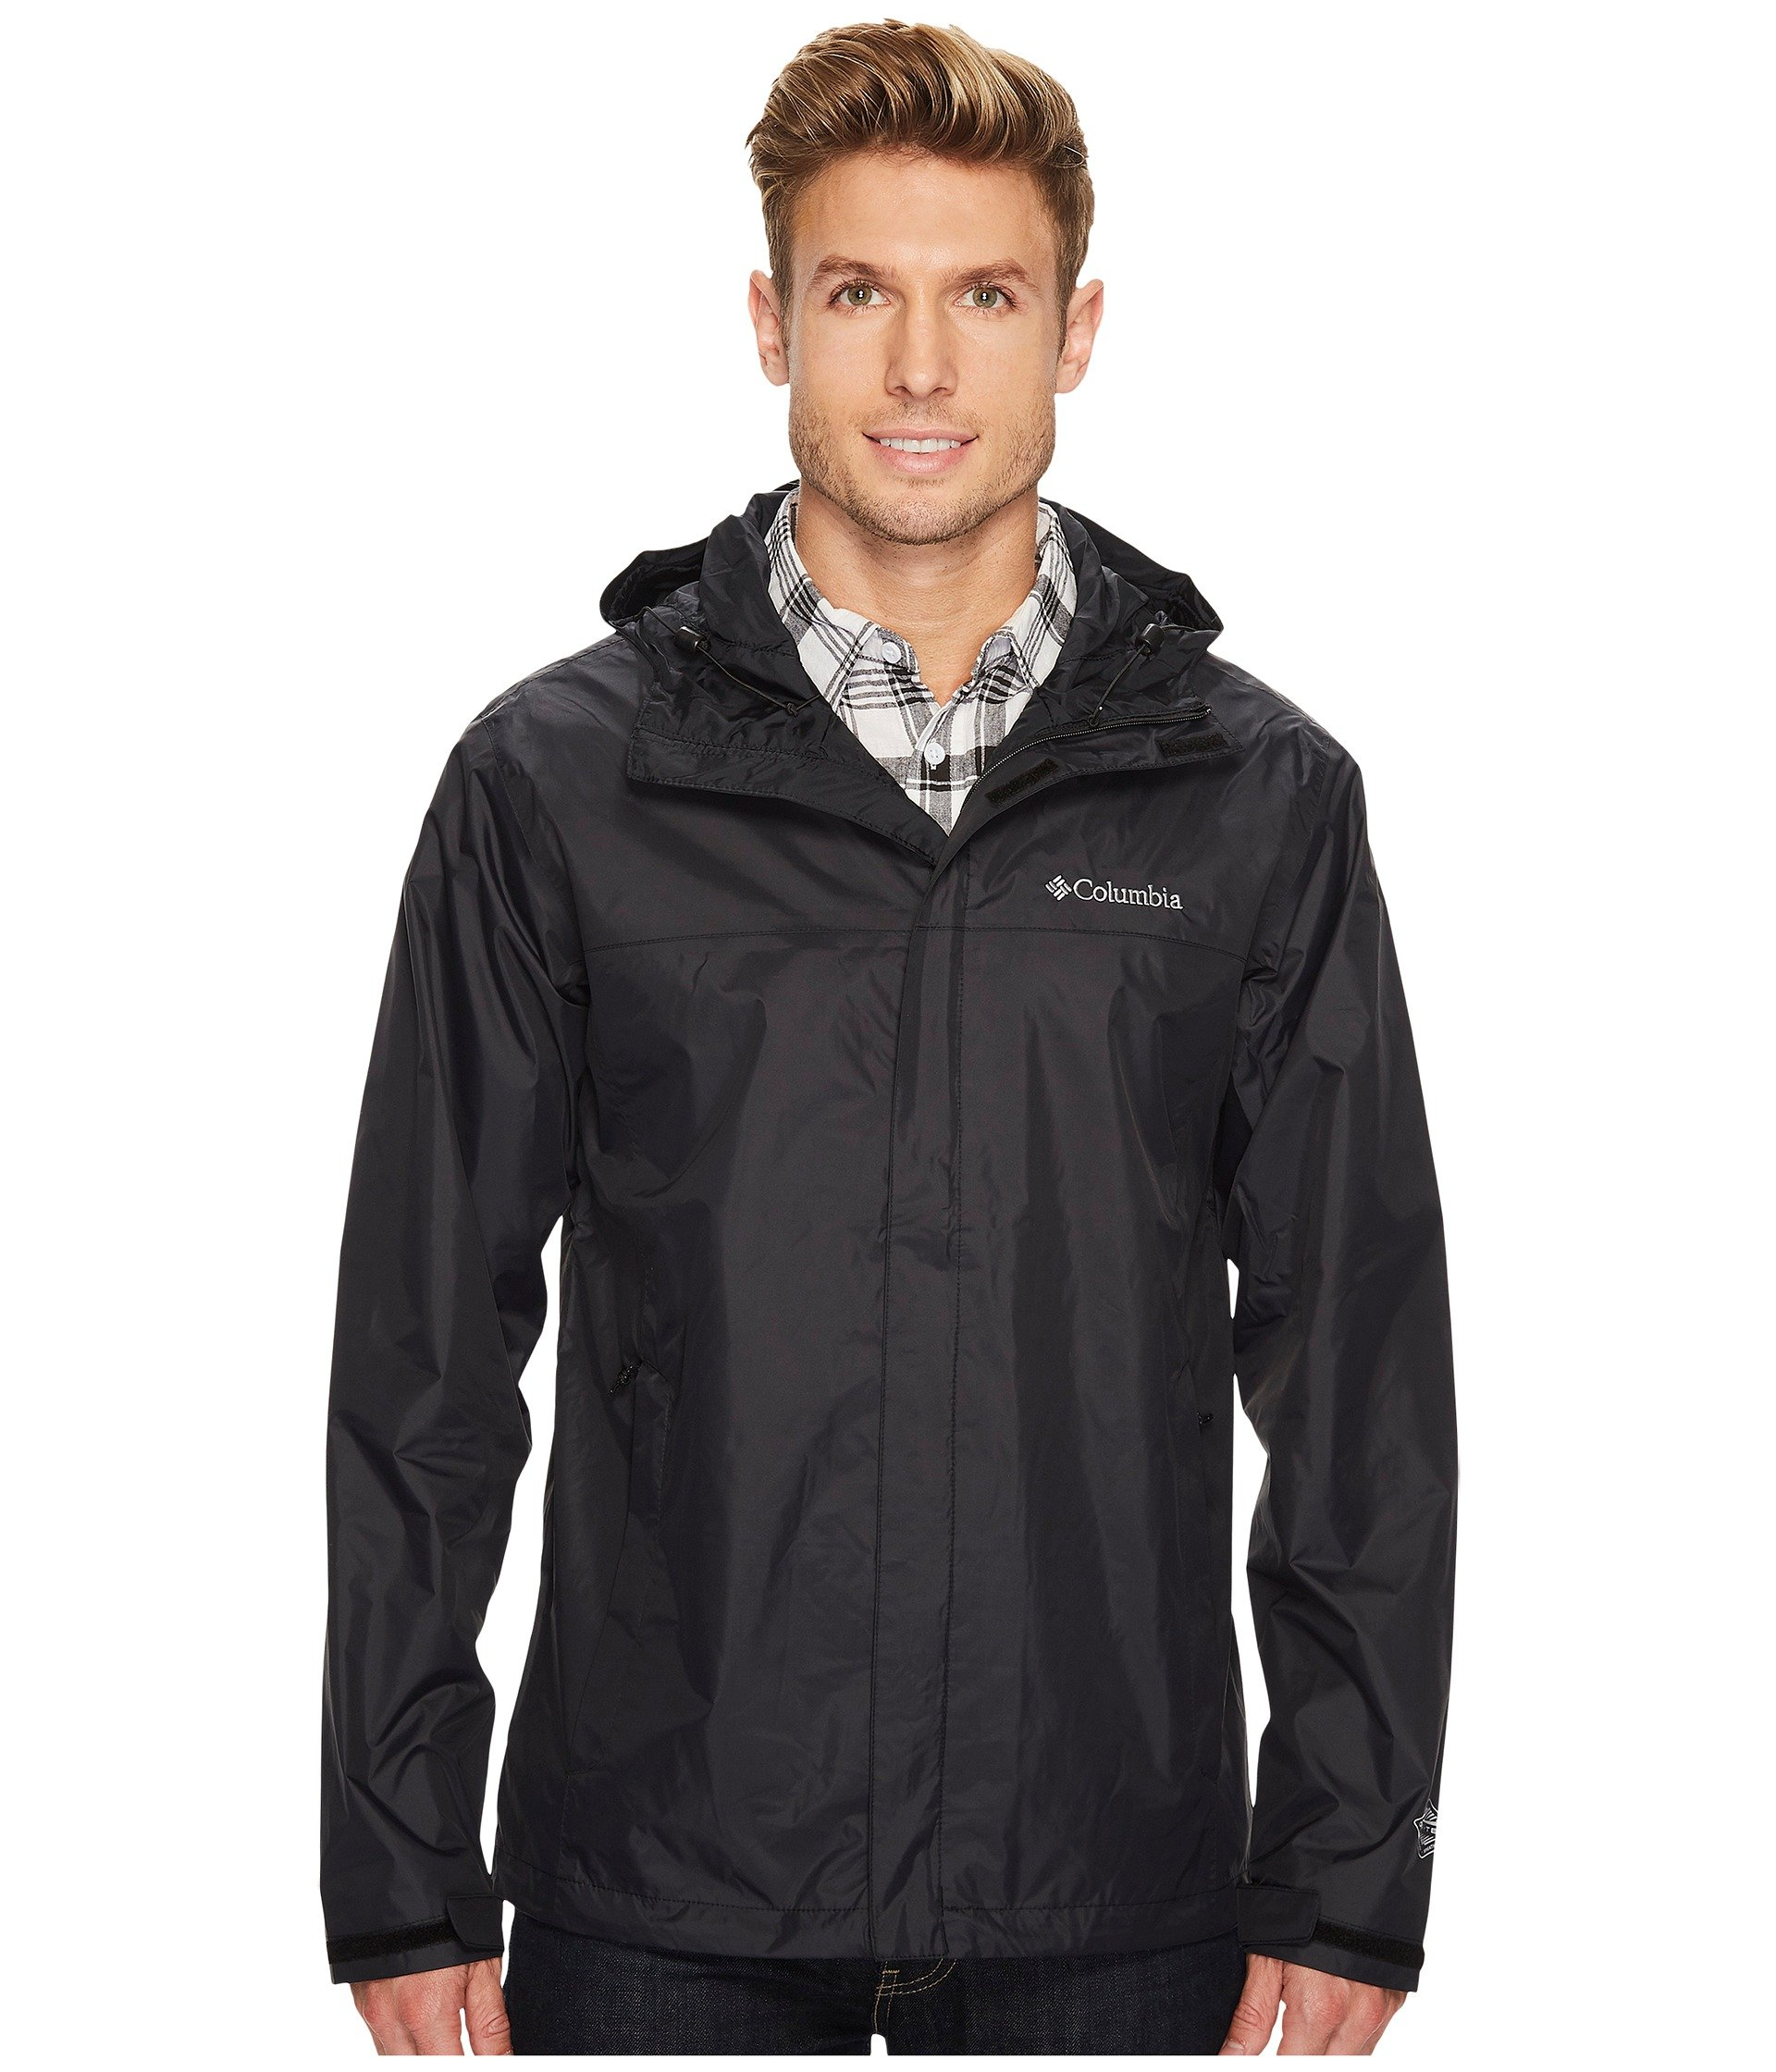 Men s Rain Jackets and Trench Coats + FREE SHIPPING  6ab4f743a